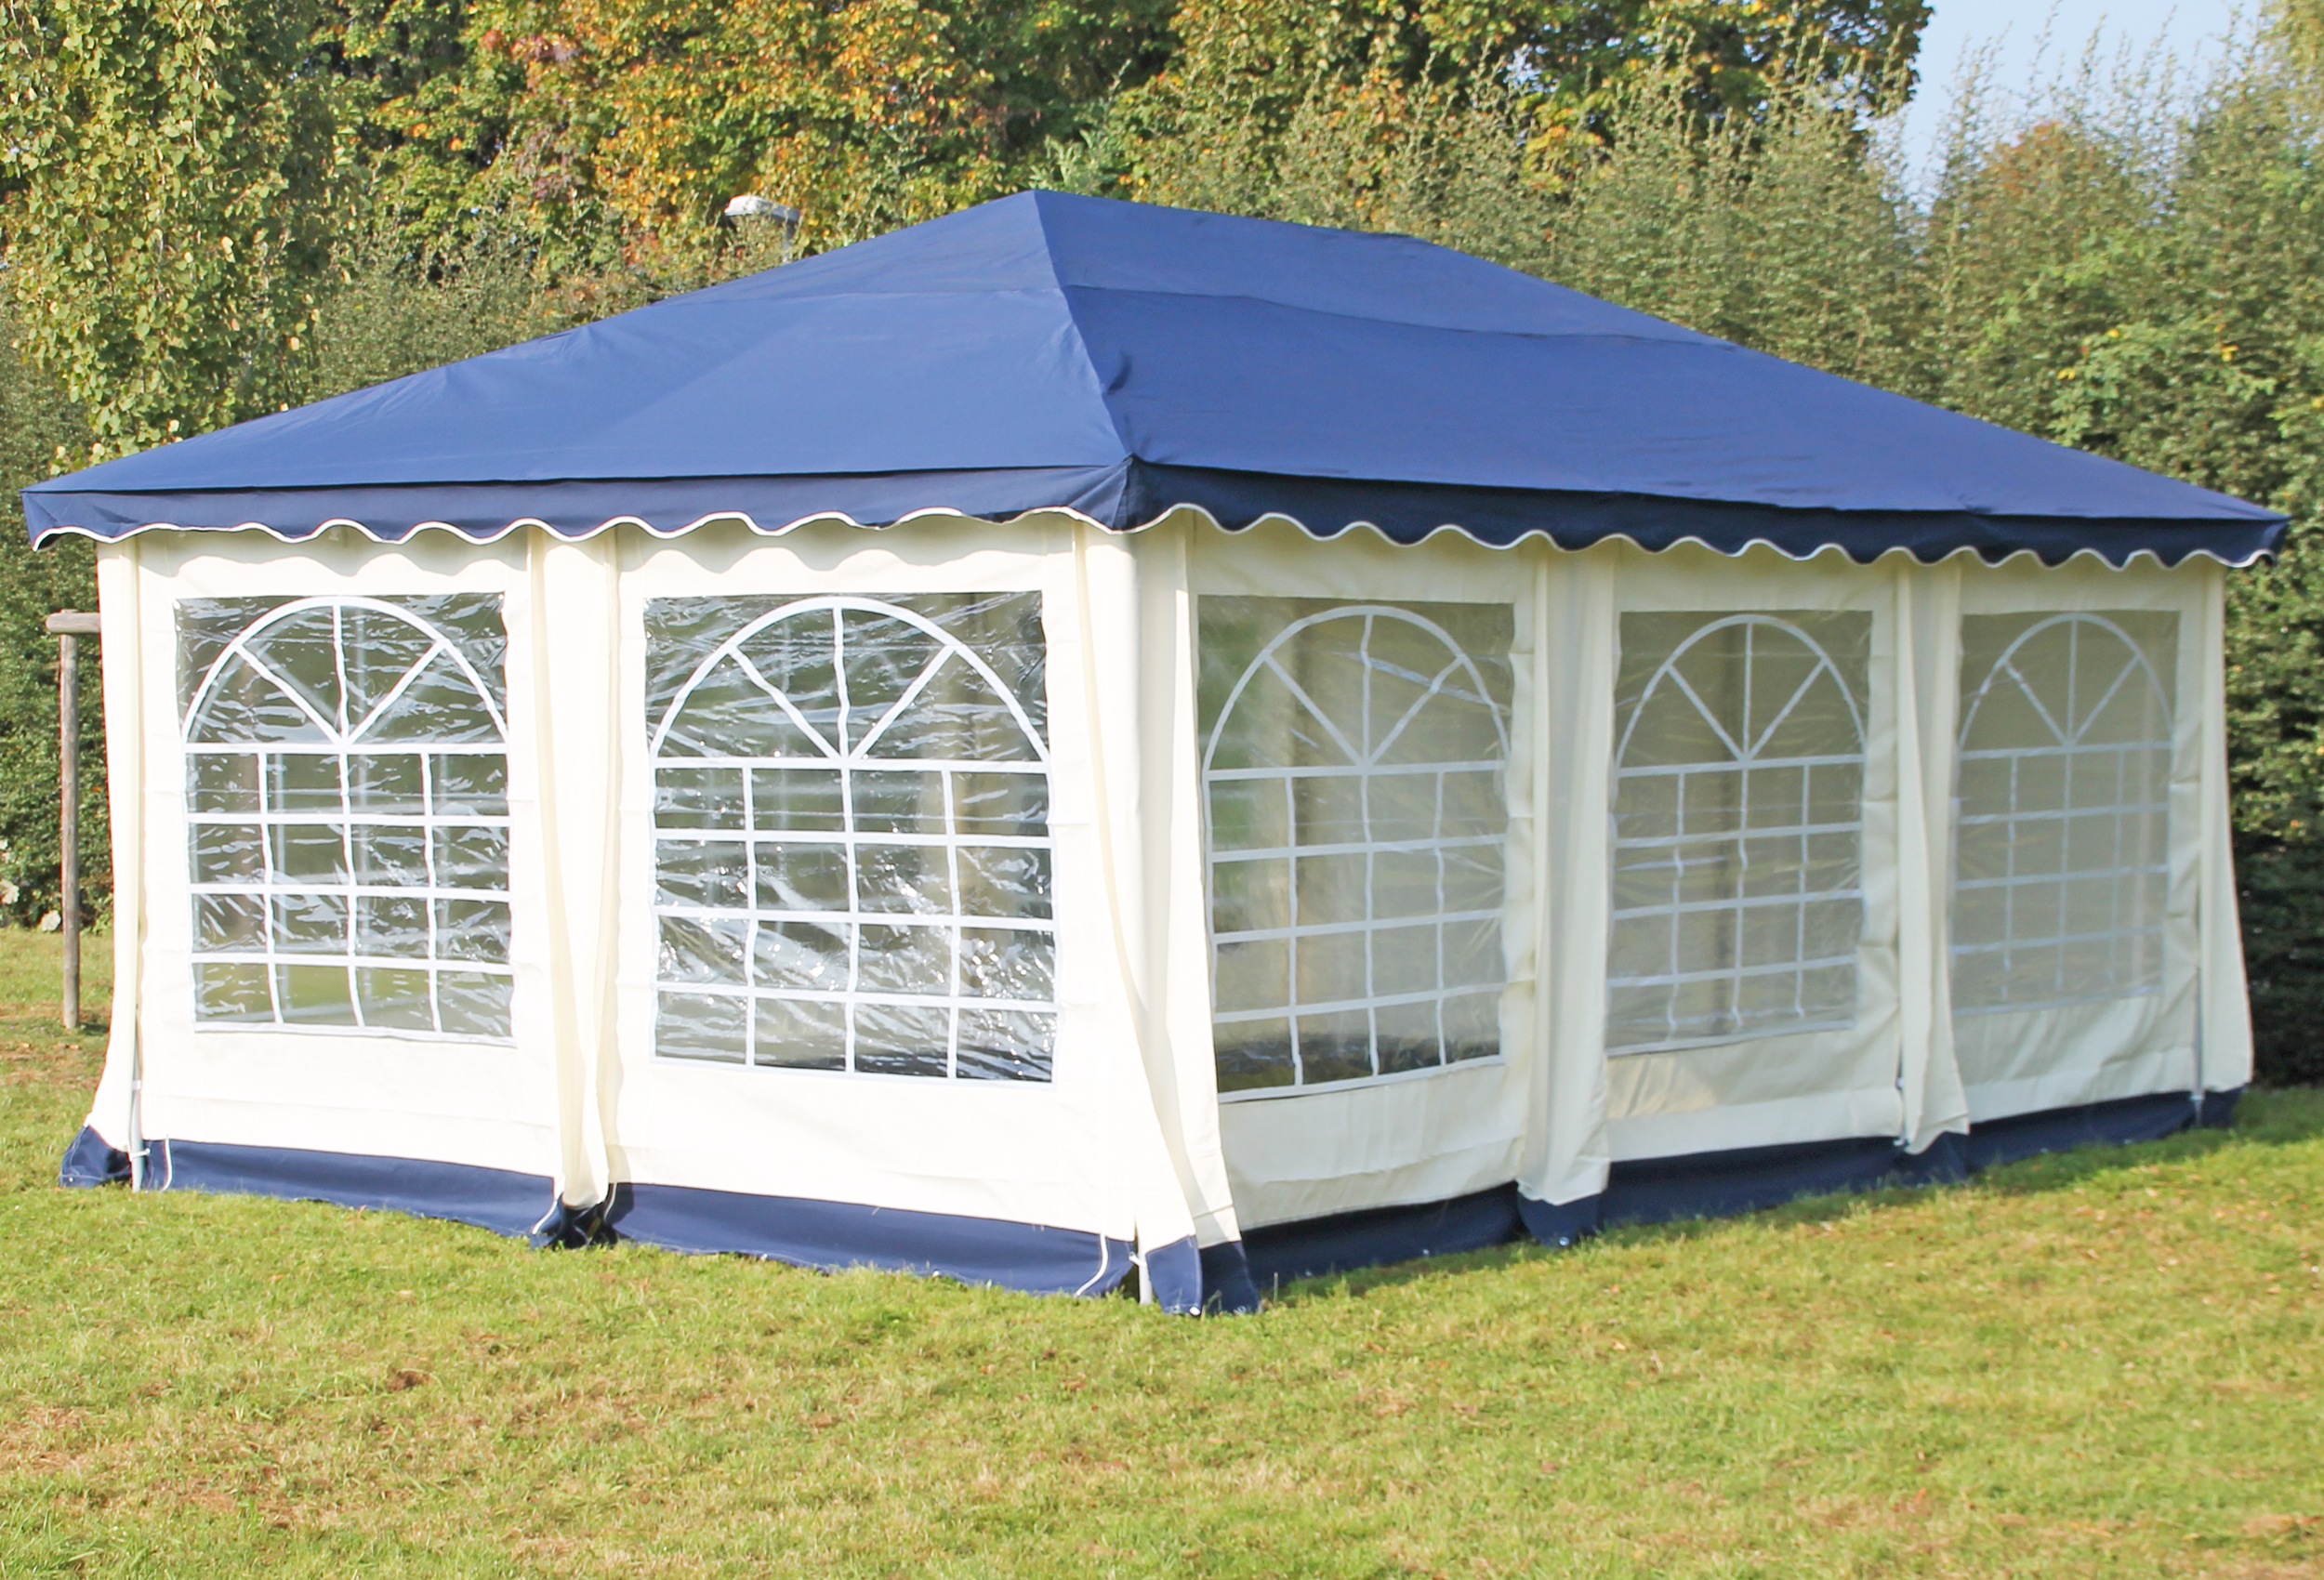 partyzelt pavillon 4x6m polyester deluxe blau 6x4 meter pavillion. Black Bedroom Furniture Sets. Home Design Ideas